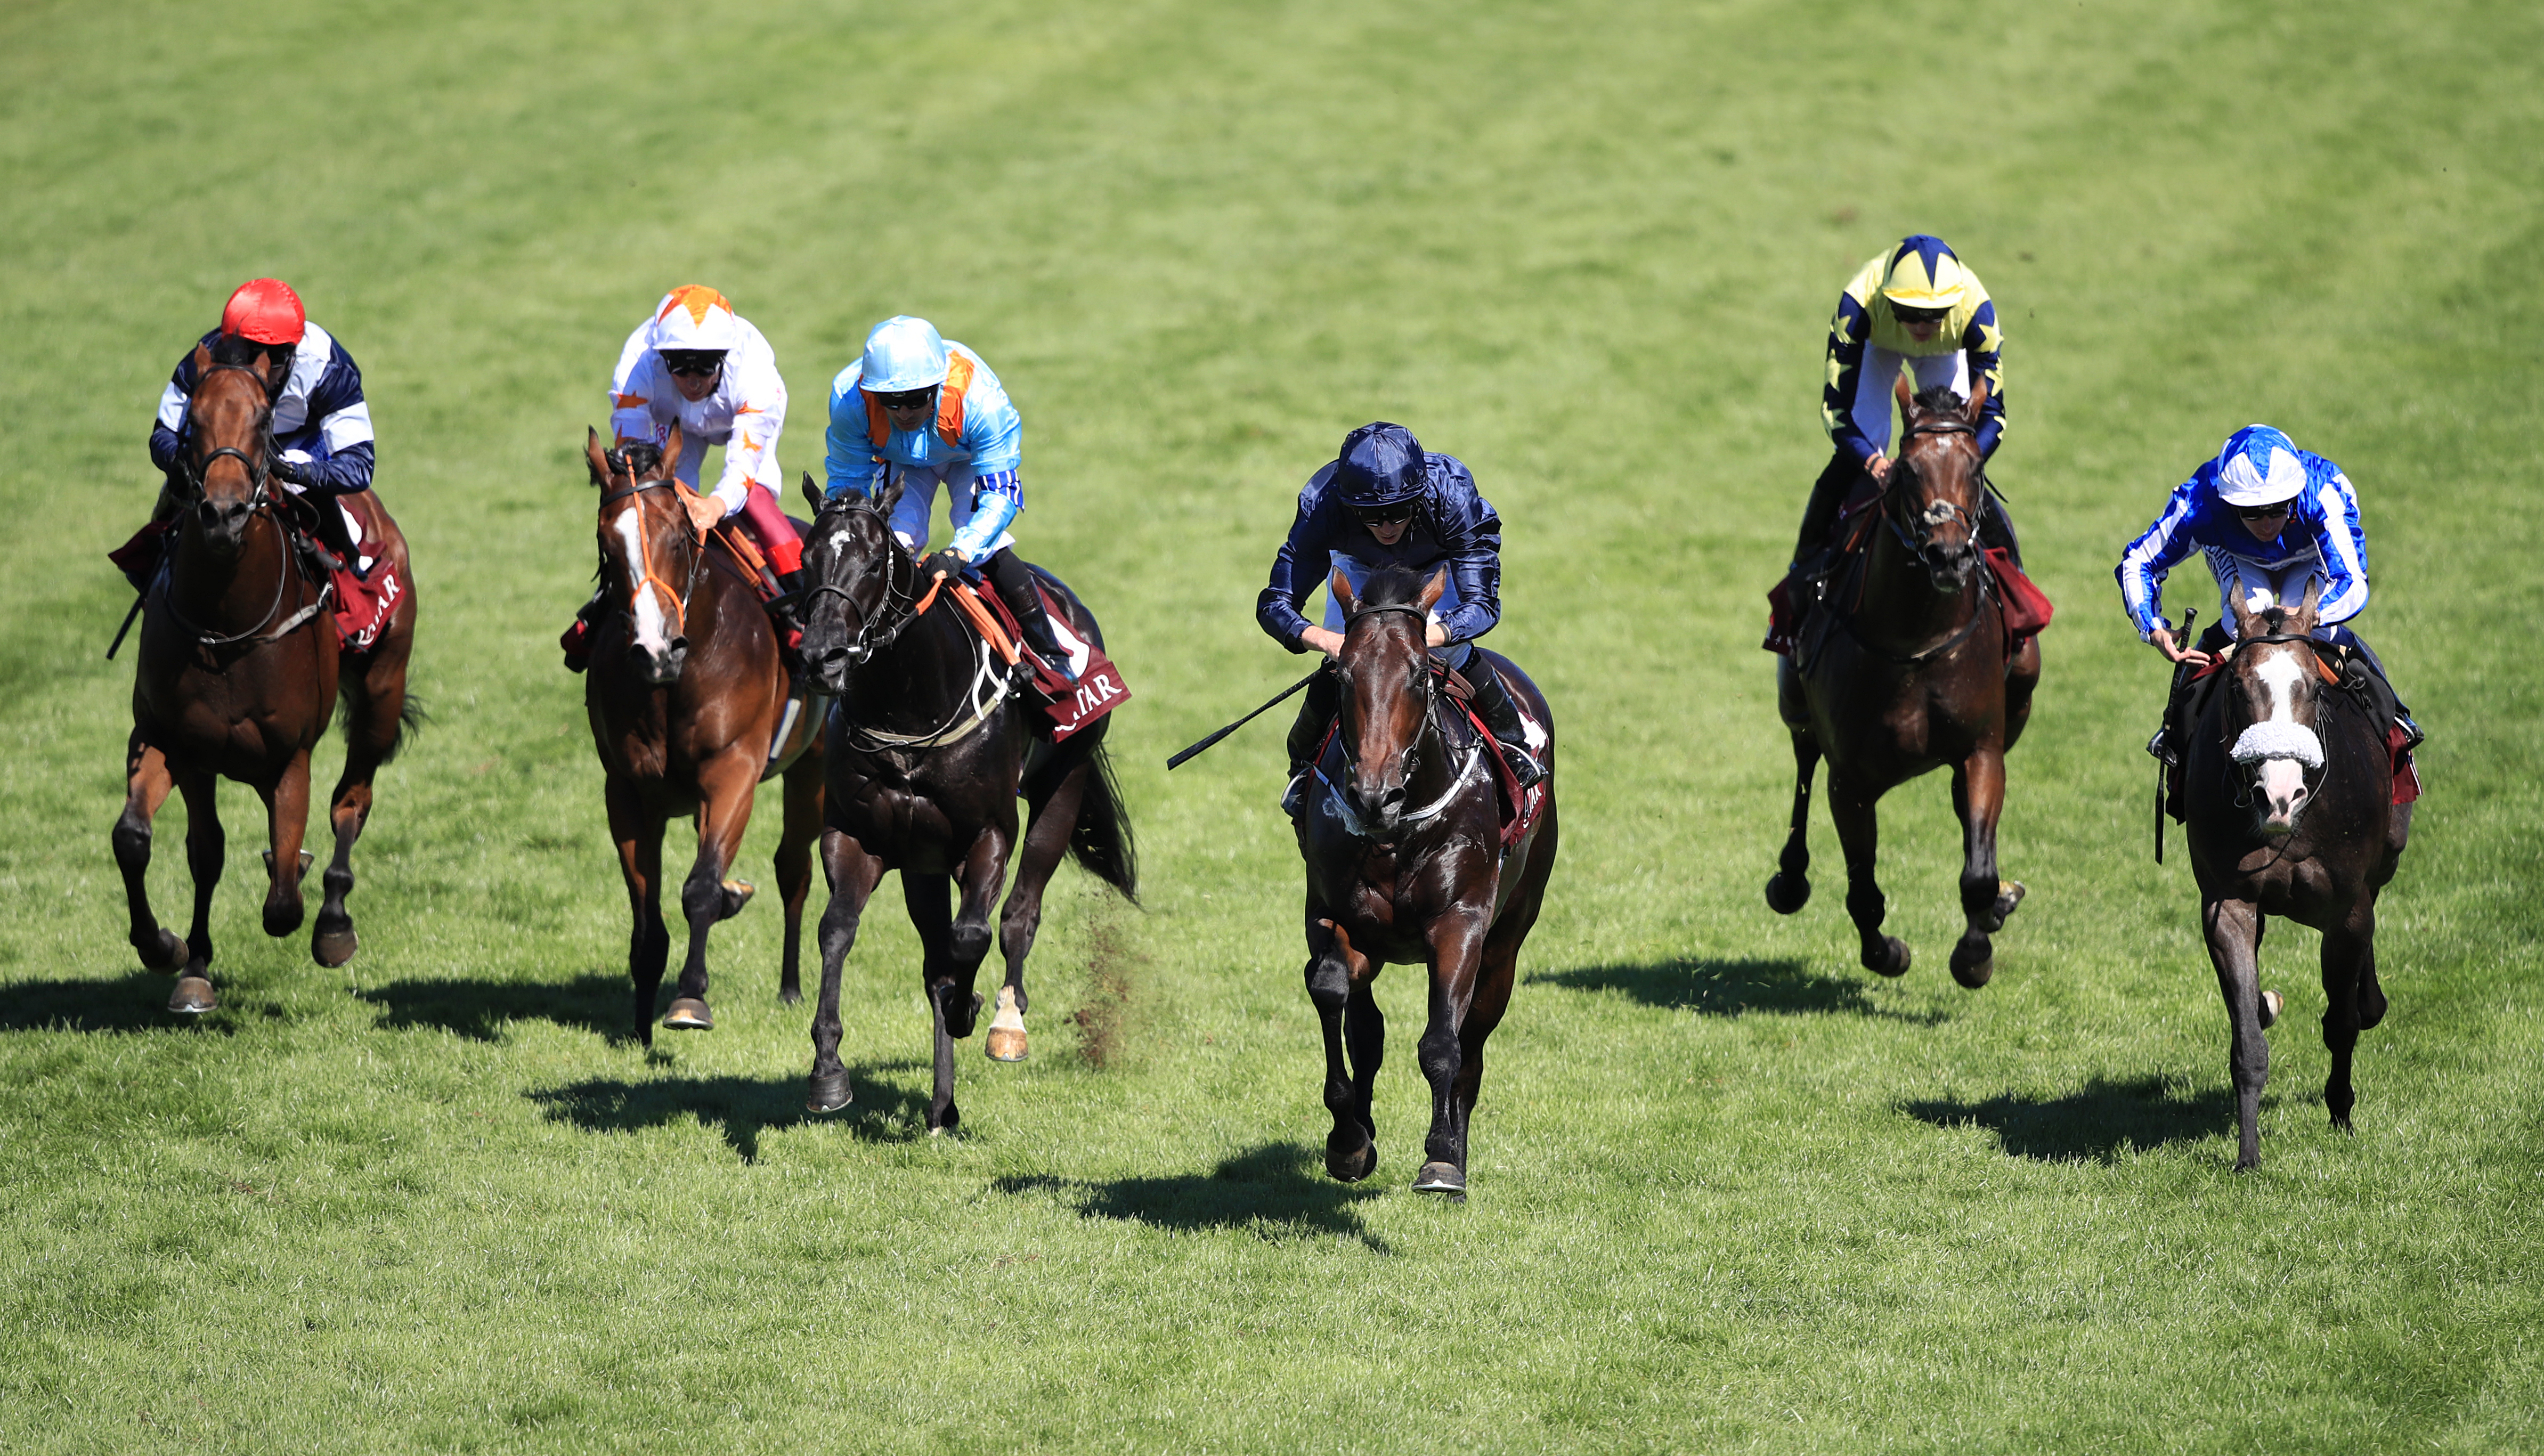 Land Force (centre) and Marie's Diamond (third from left) finish first and second at Goodwood